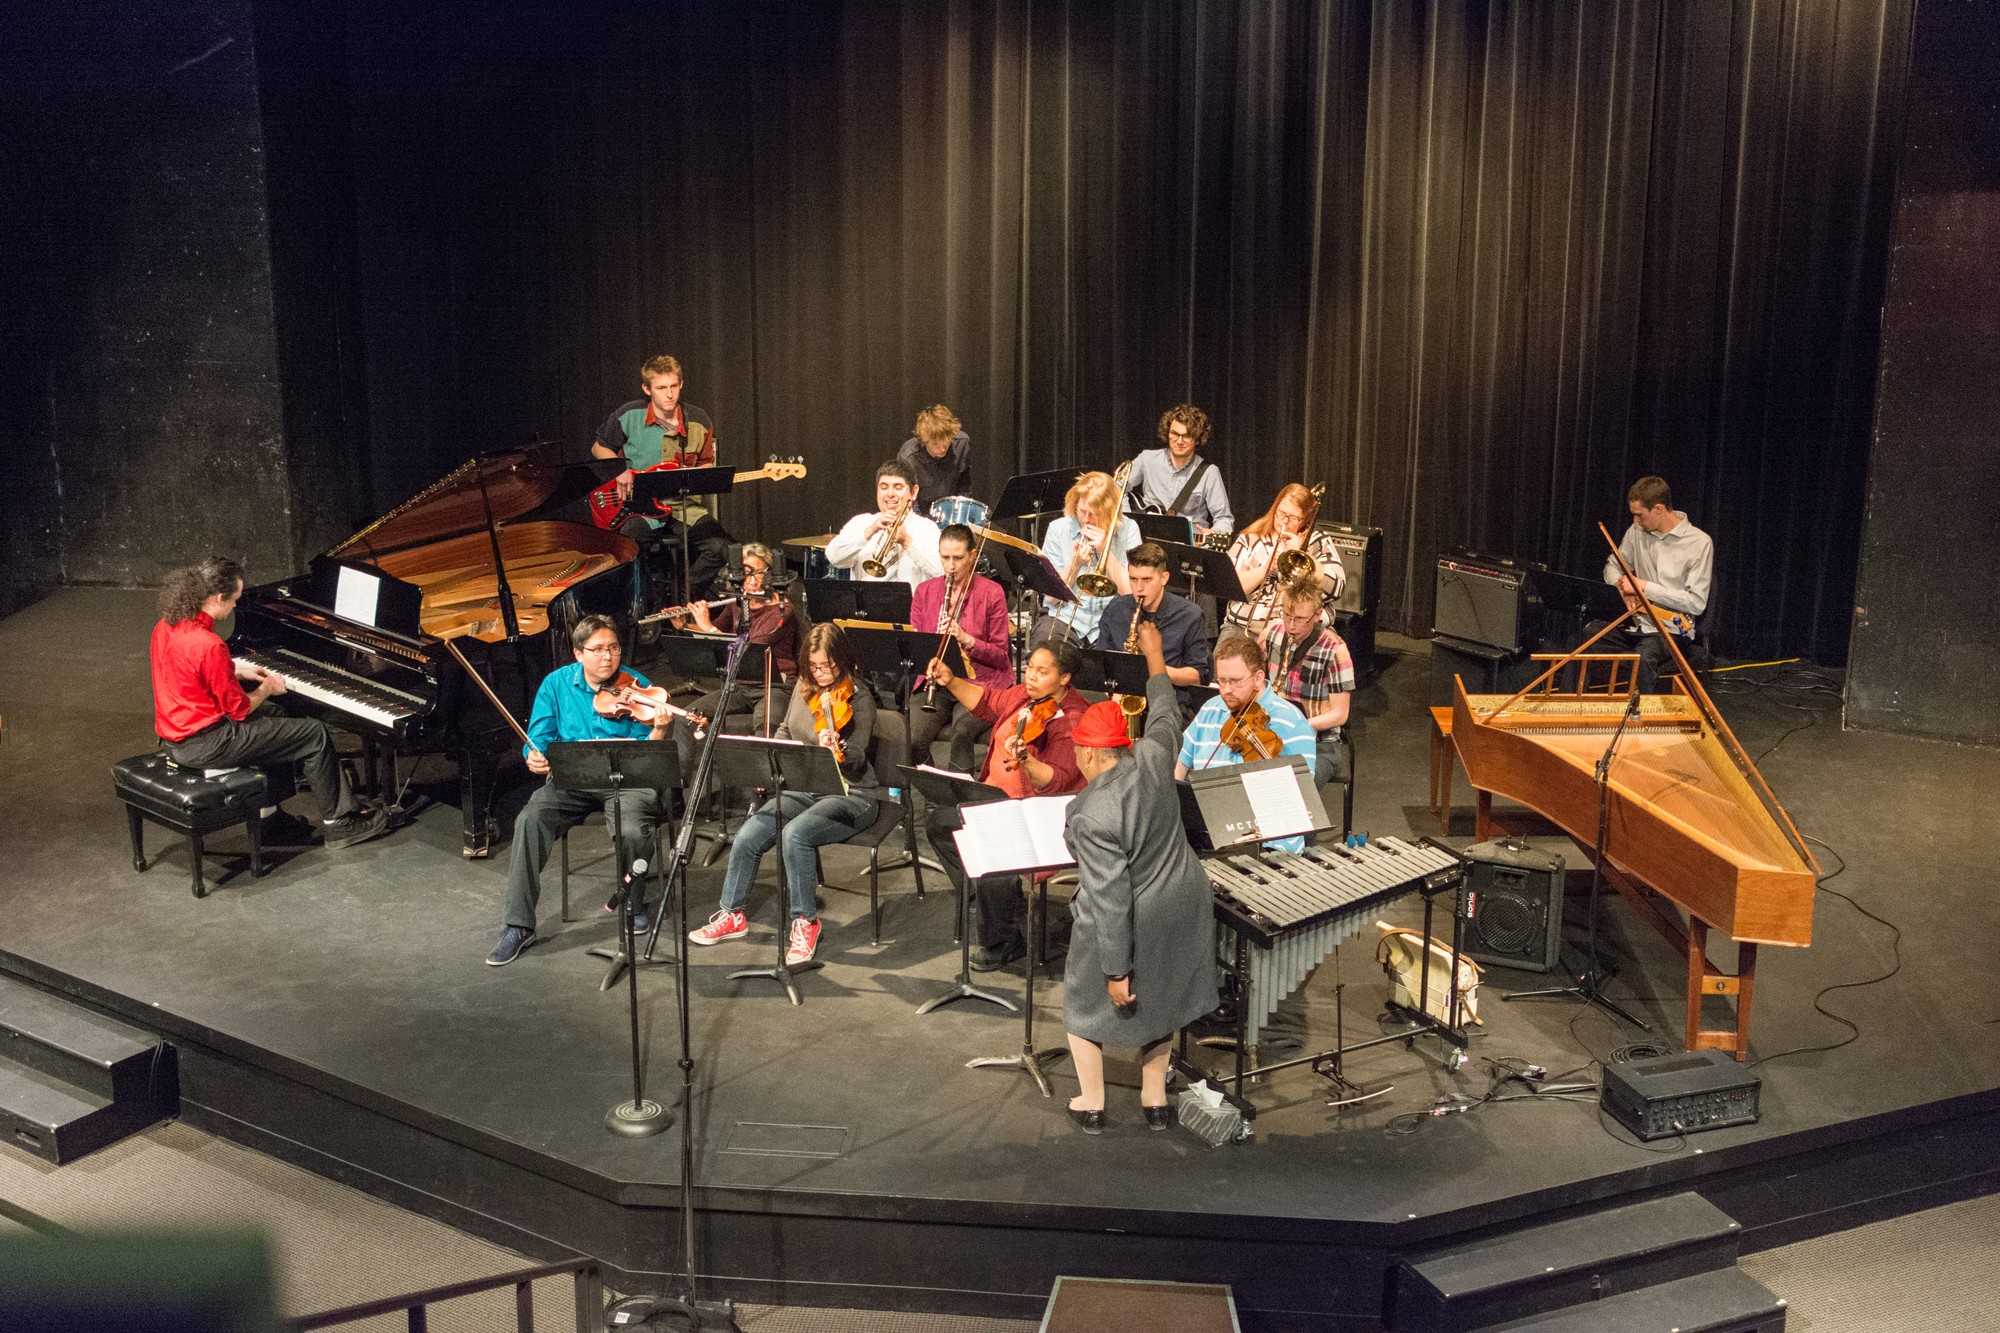 The chamber and jazz ensembles combined to close the concert with 'Smooth' by Itaal Shur and Rob Thomas. Photo credit: Benjamin Pecka